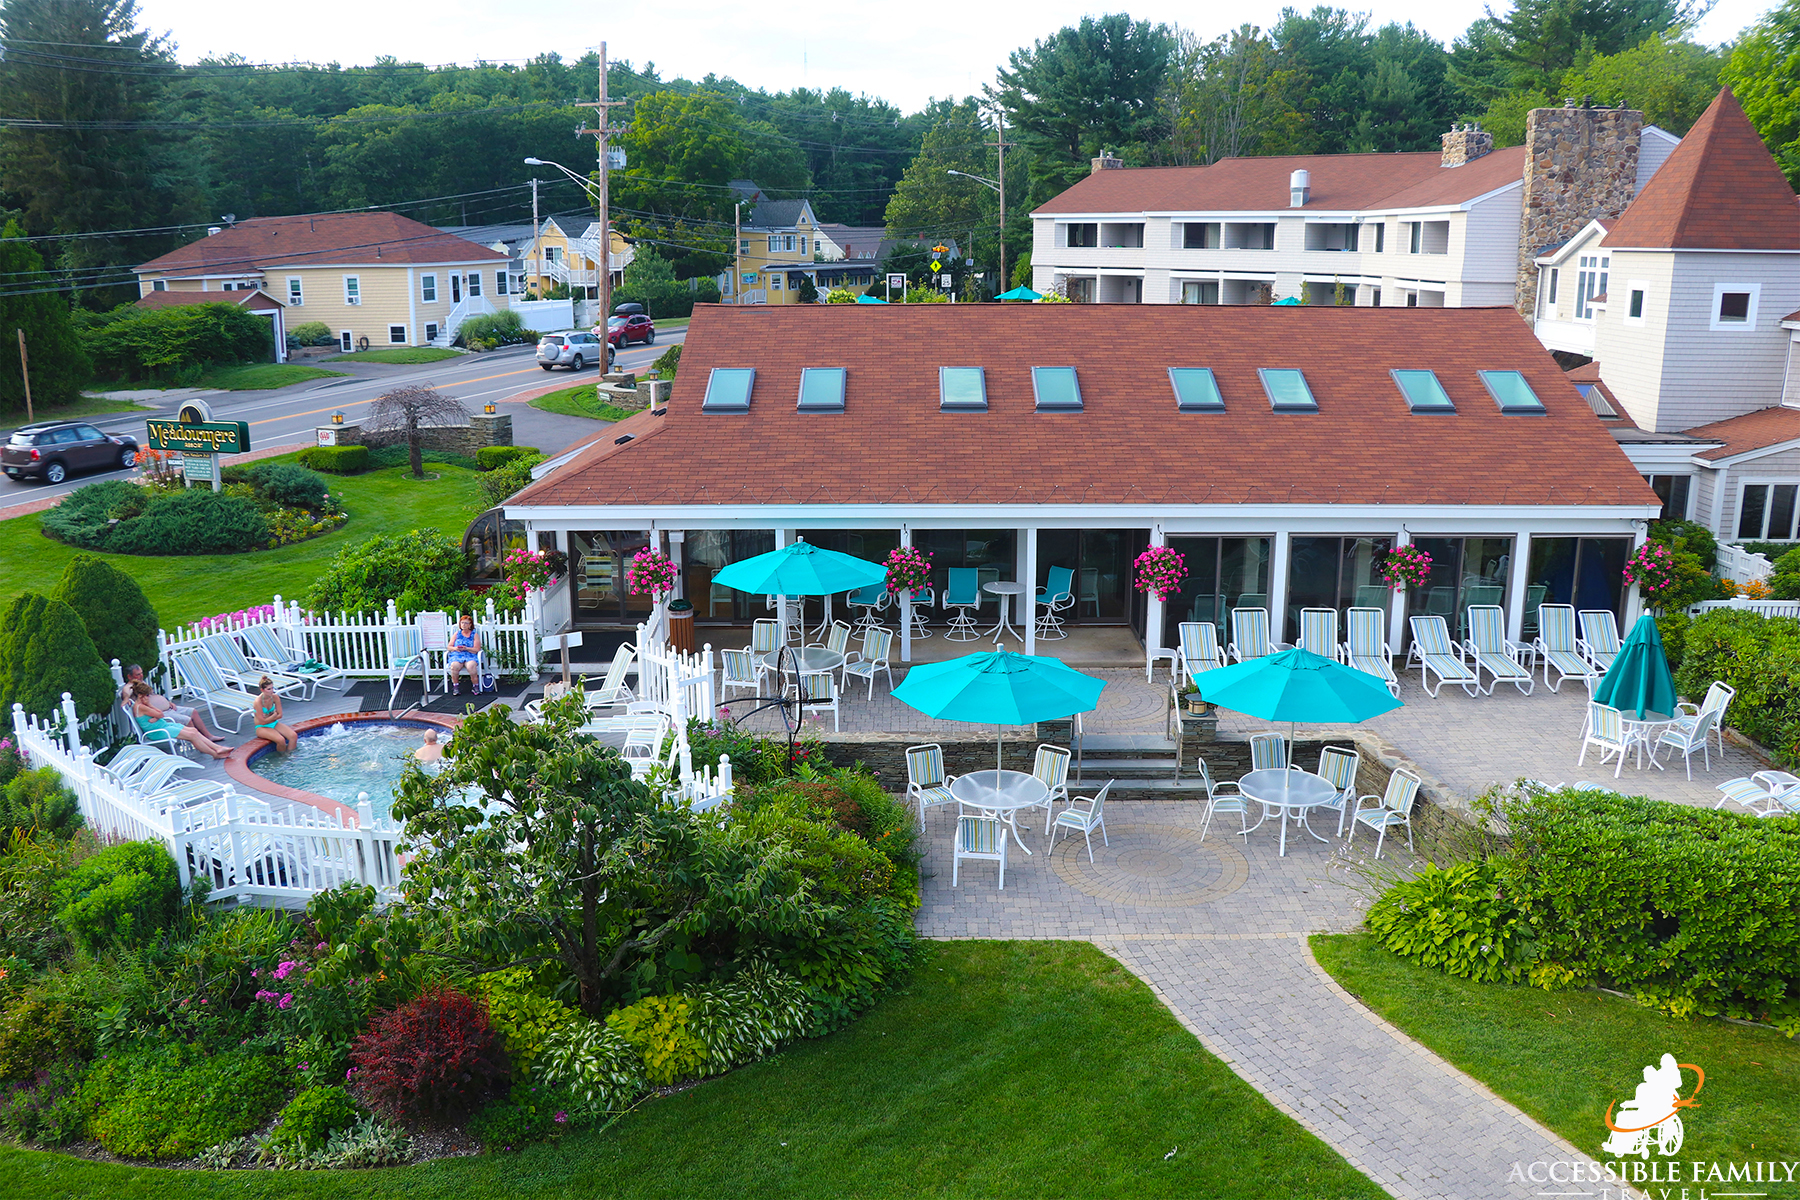 Meadowmere Resort – Your Accessible Home Away From Home in Ogunquit, Maine